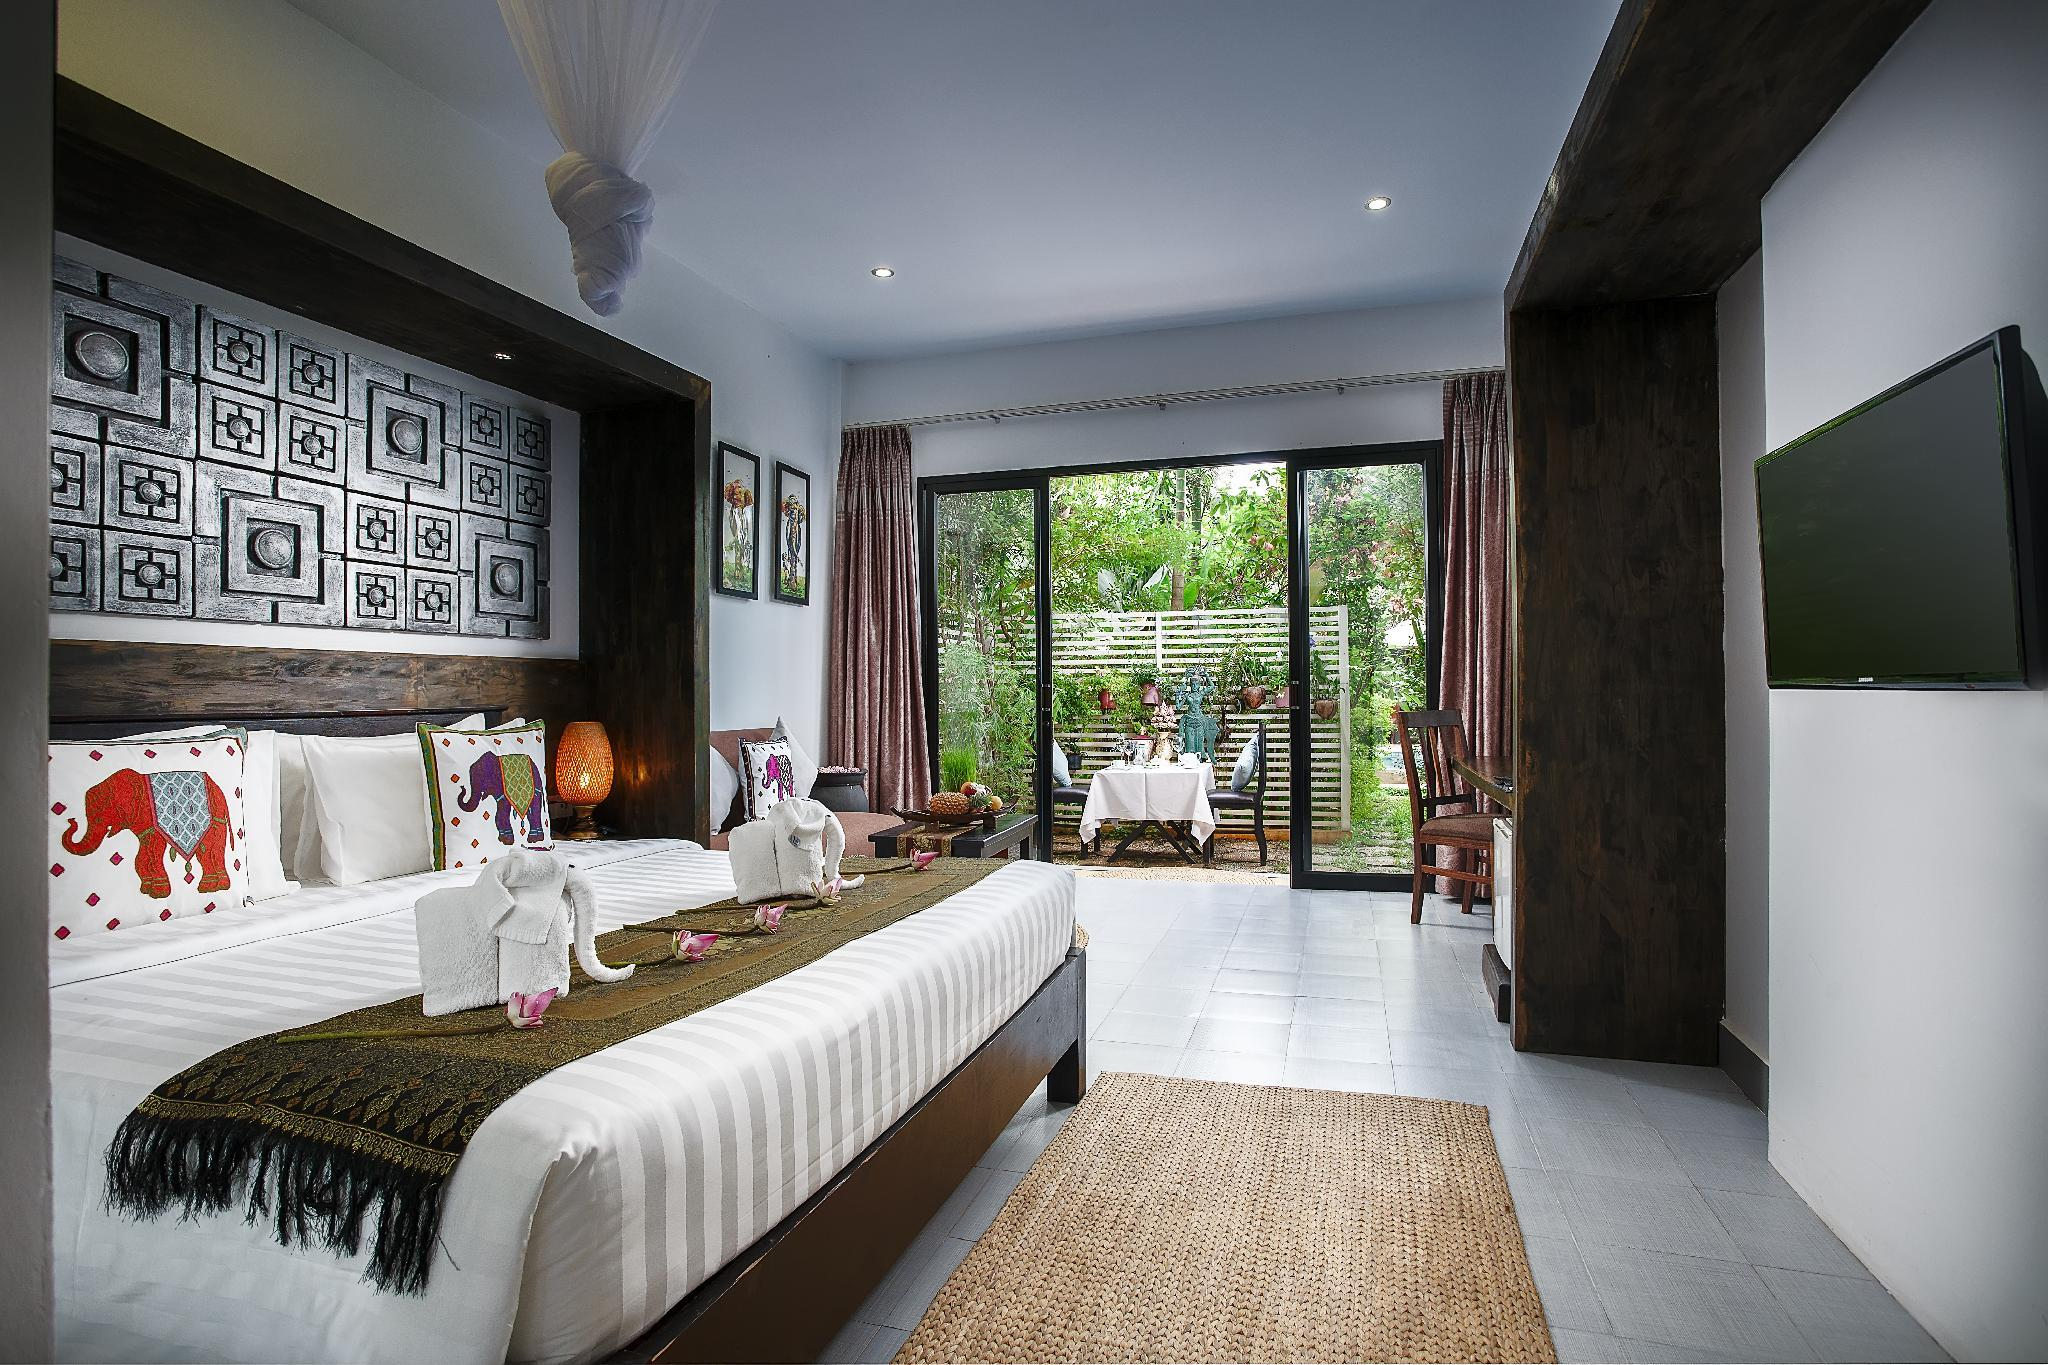 Cabana Room with Private Garden and Pool View